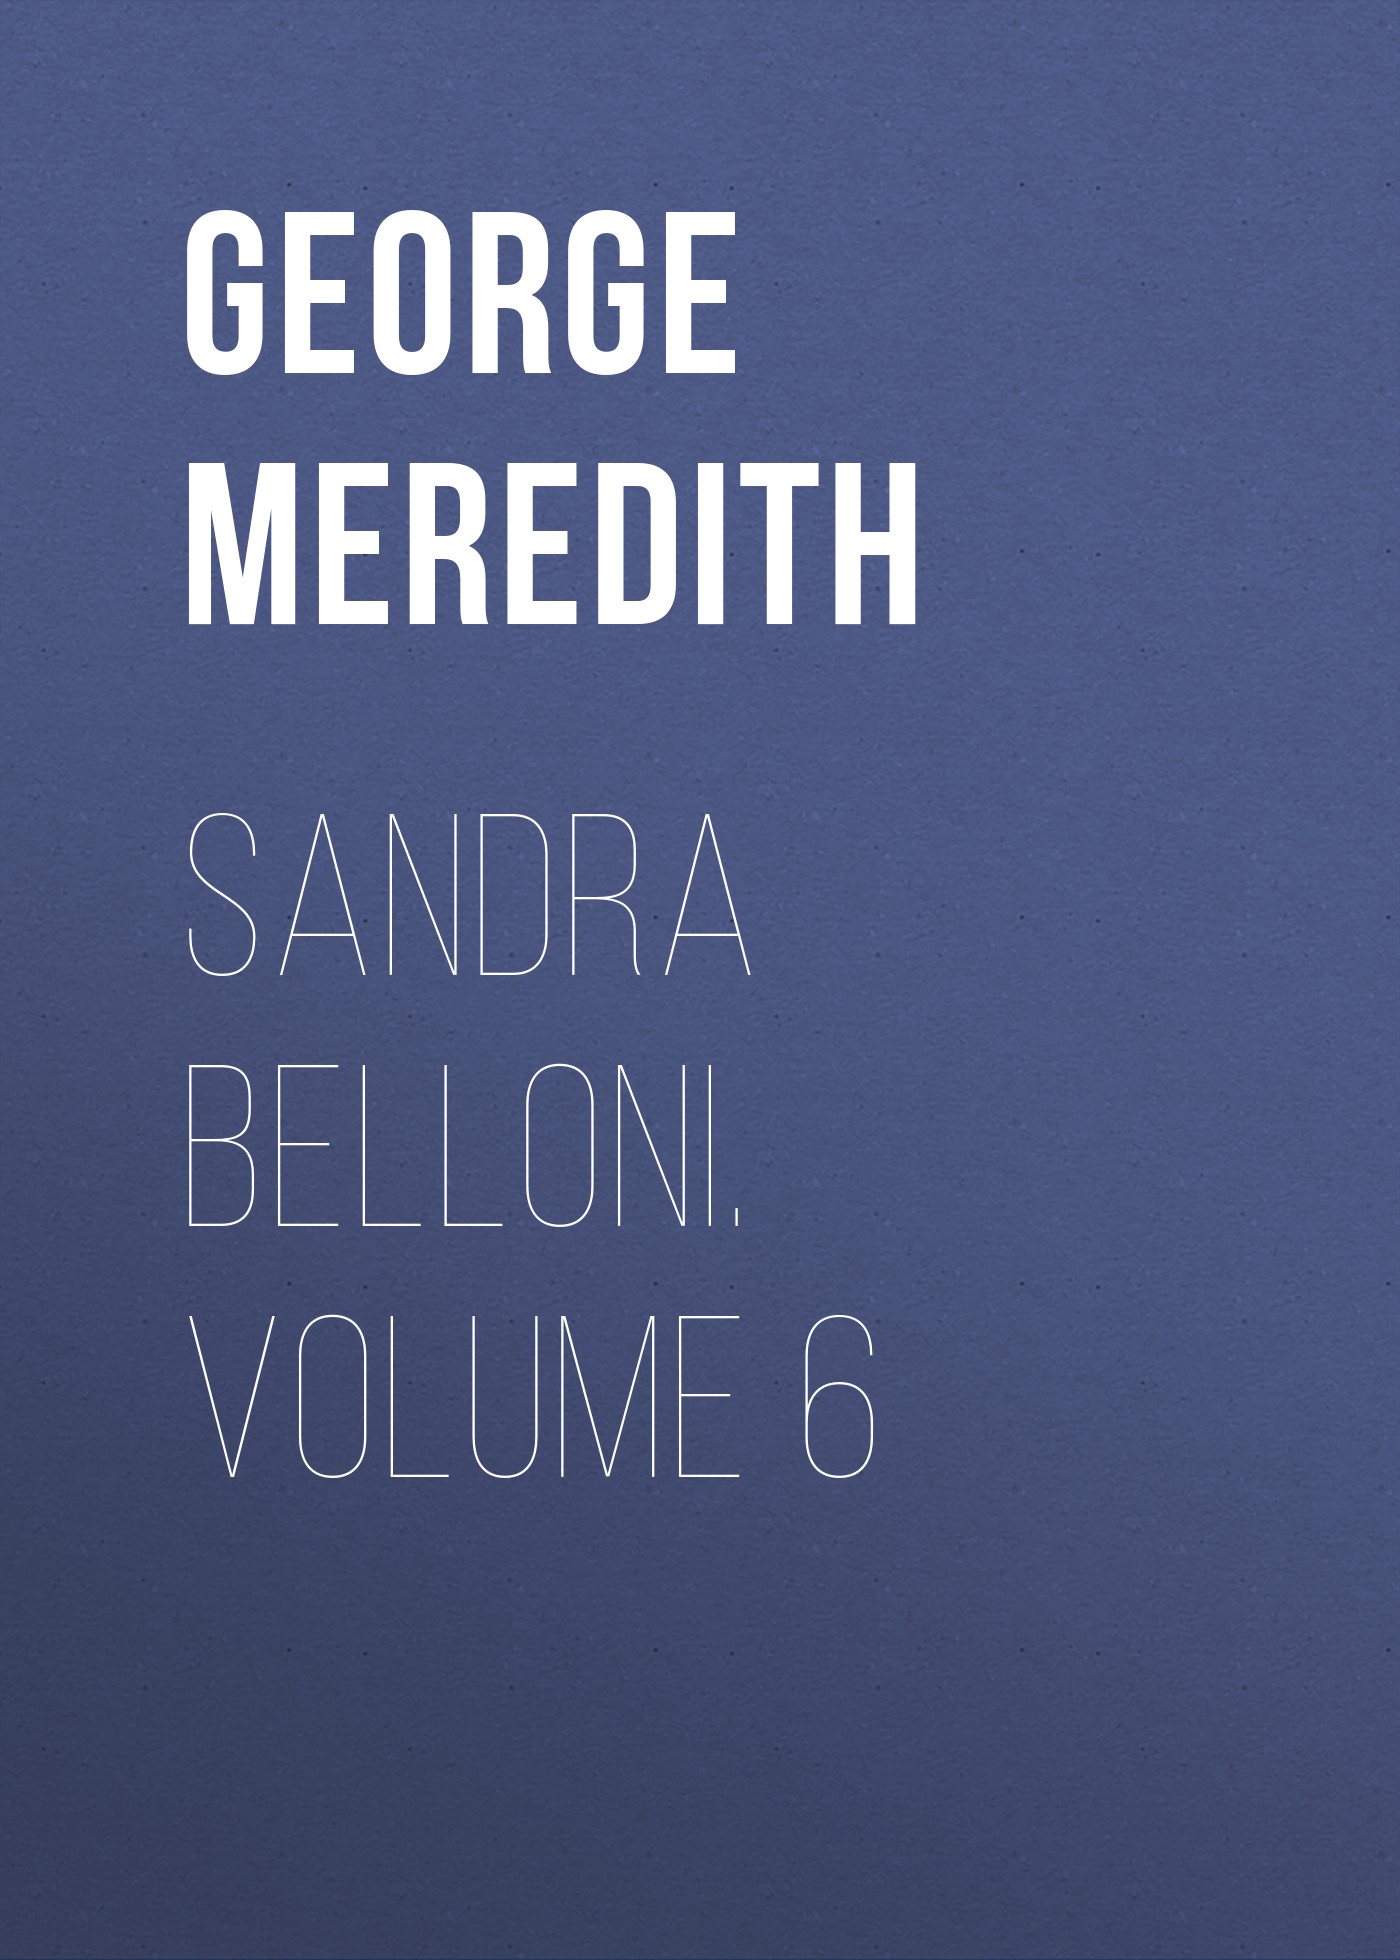 цена George Meredith Sandra Belloni. Volume 6 в интернет-магазинах